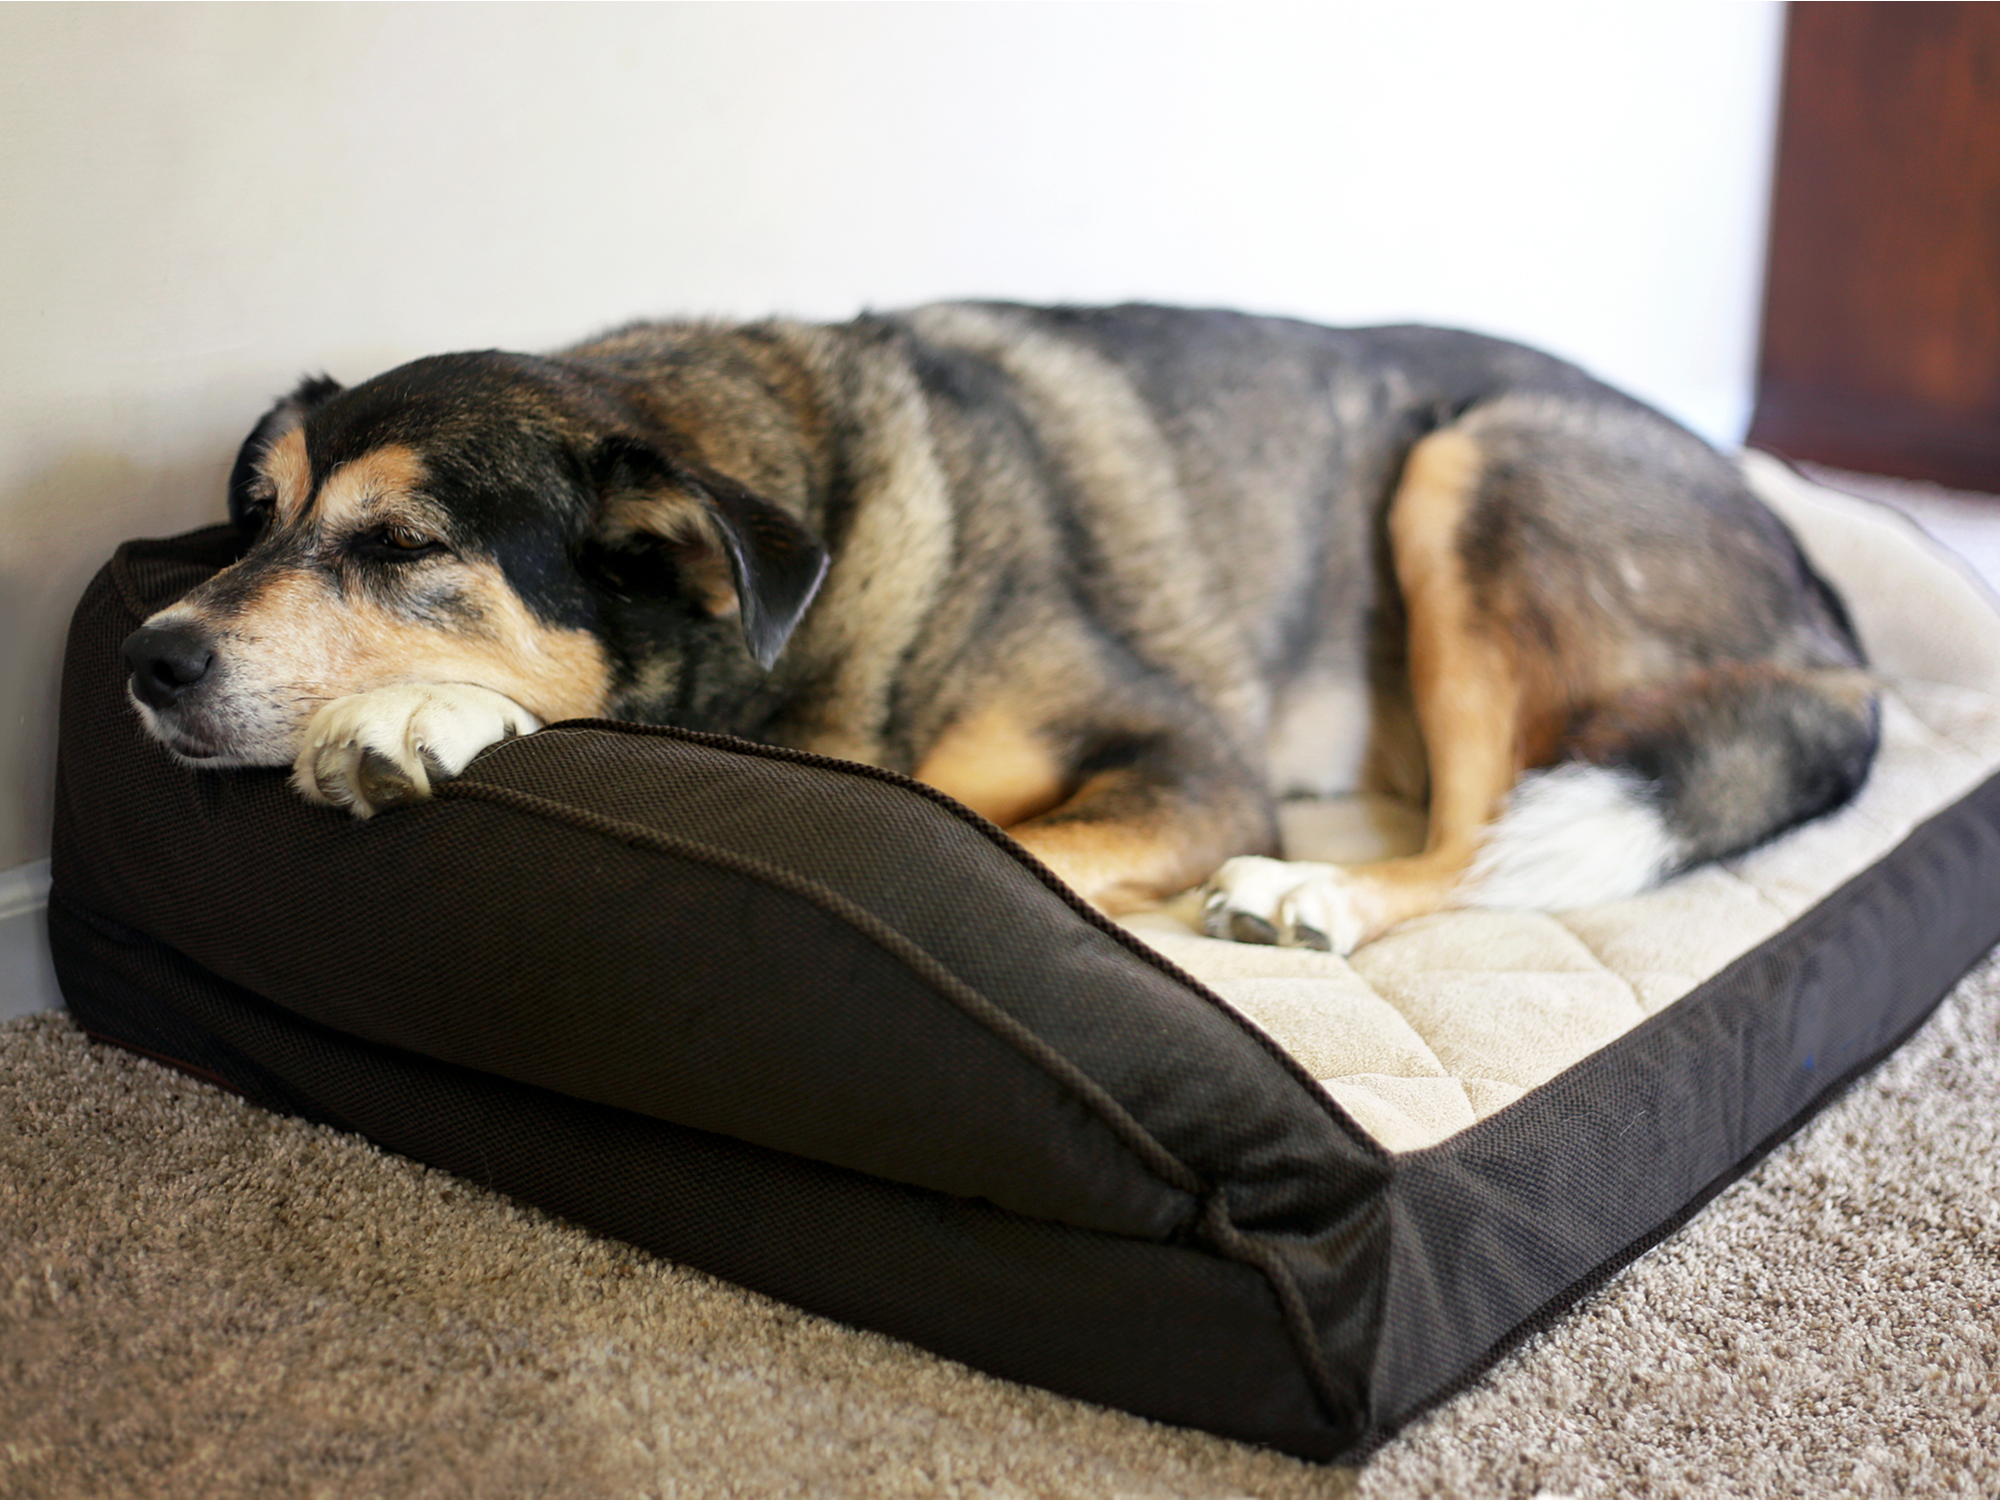 Does Weight Impact Arthritis in Pets?